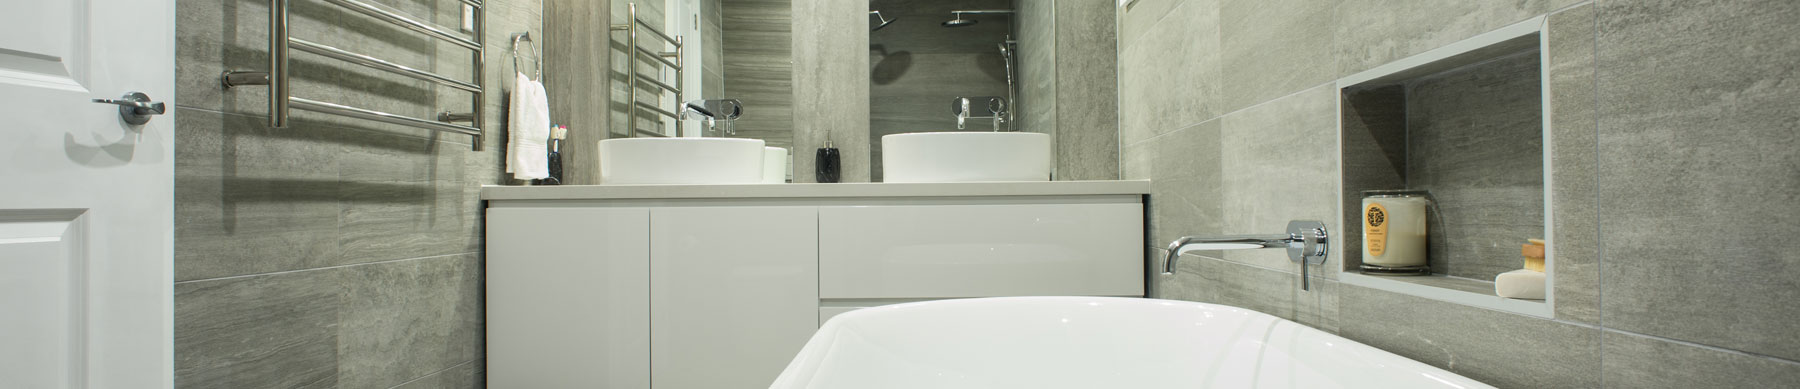 Abode Renovations Sydney Bathroom And Kitchen Renovation Experts - Bathroom renovation company